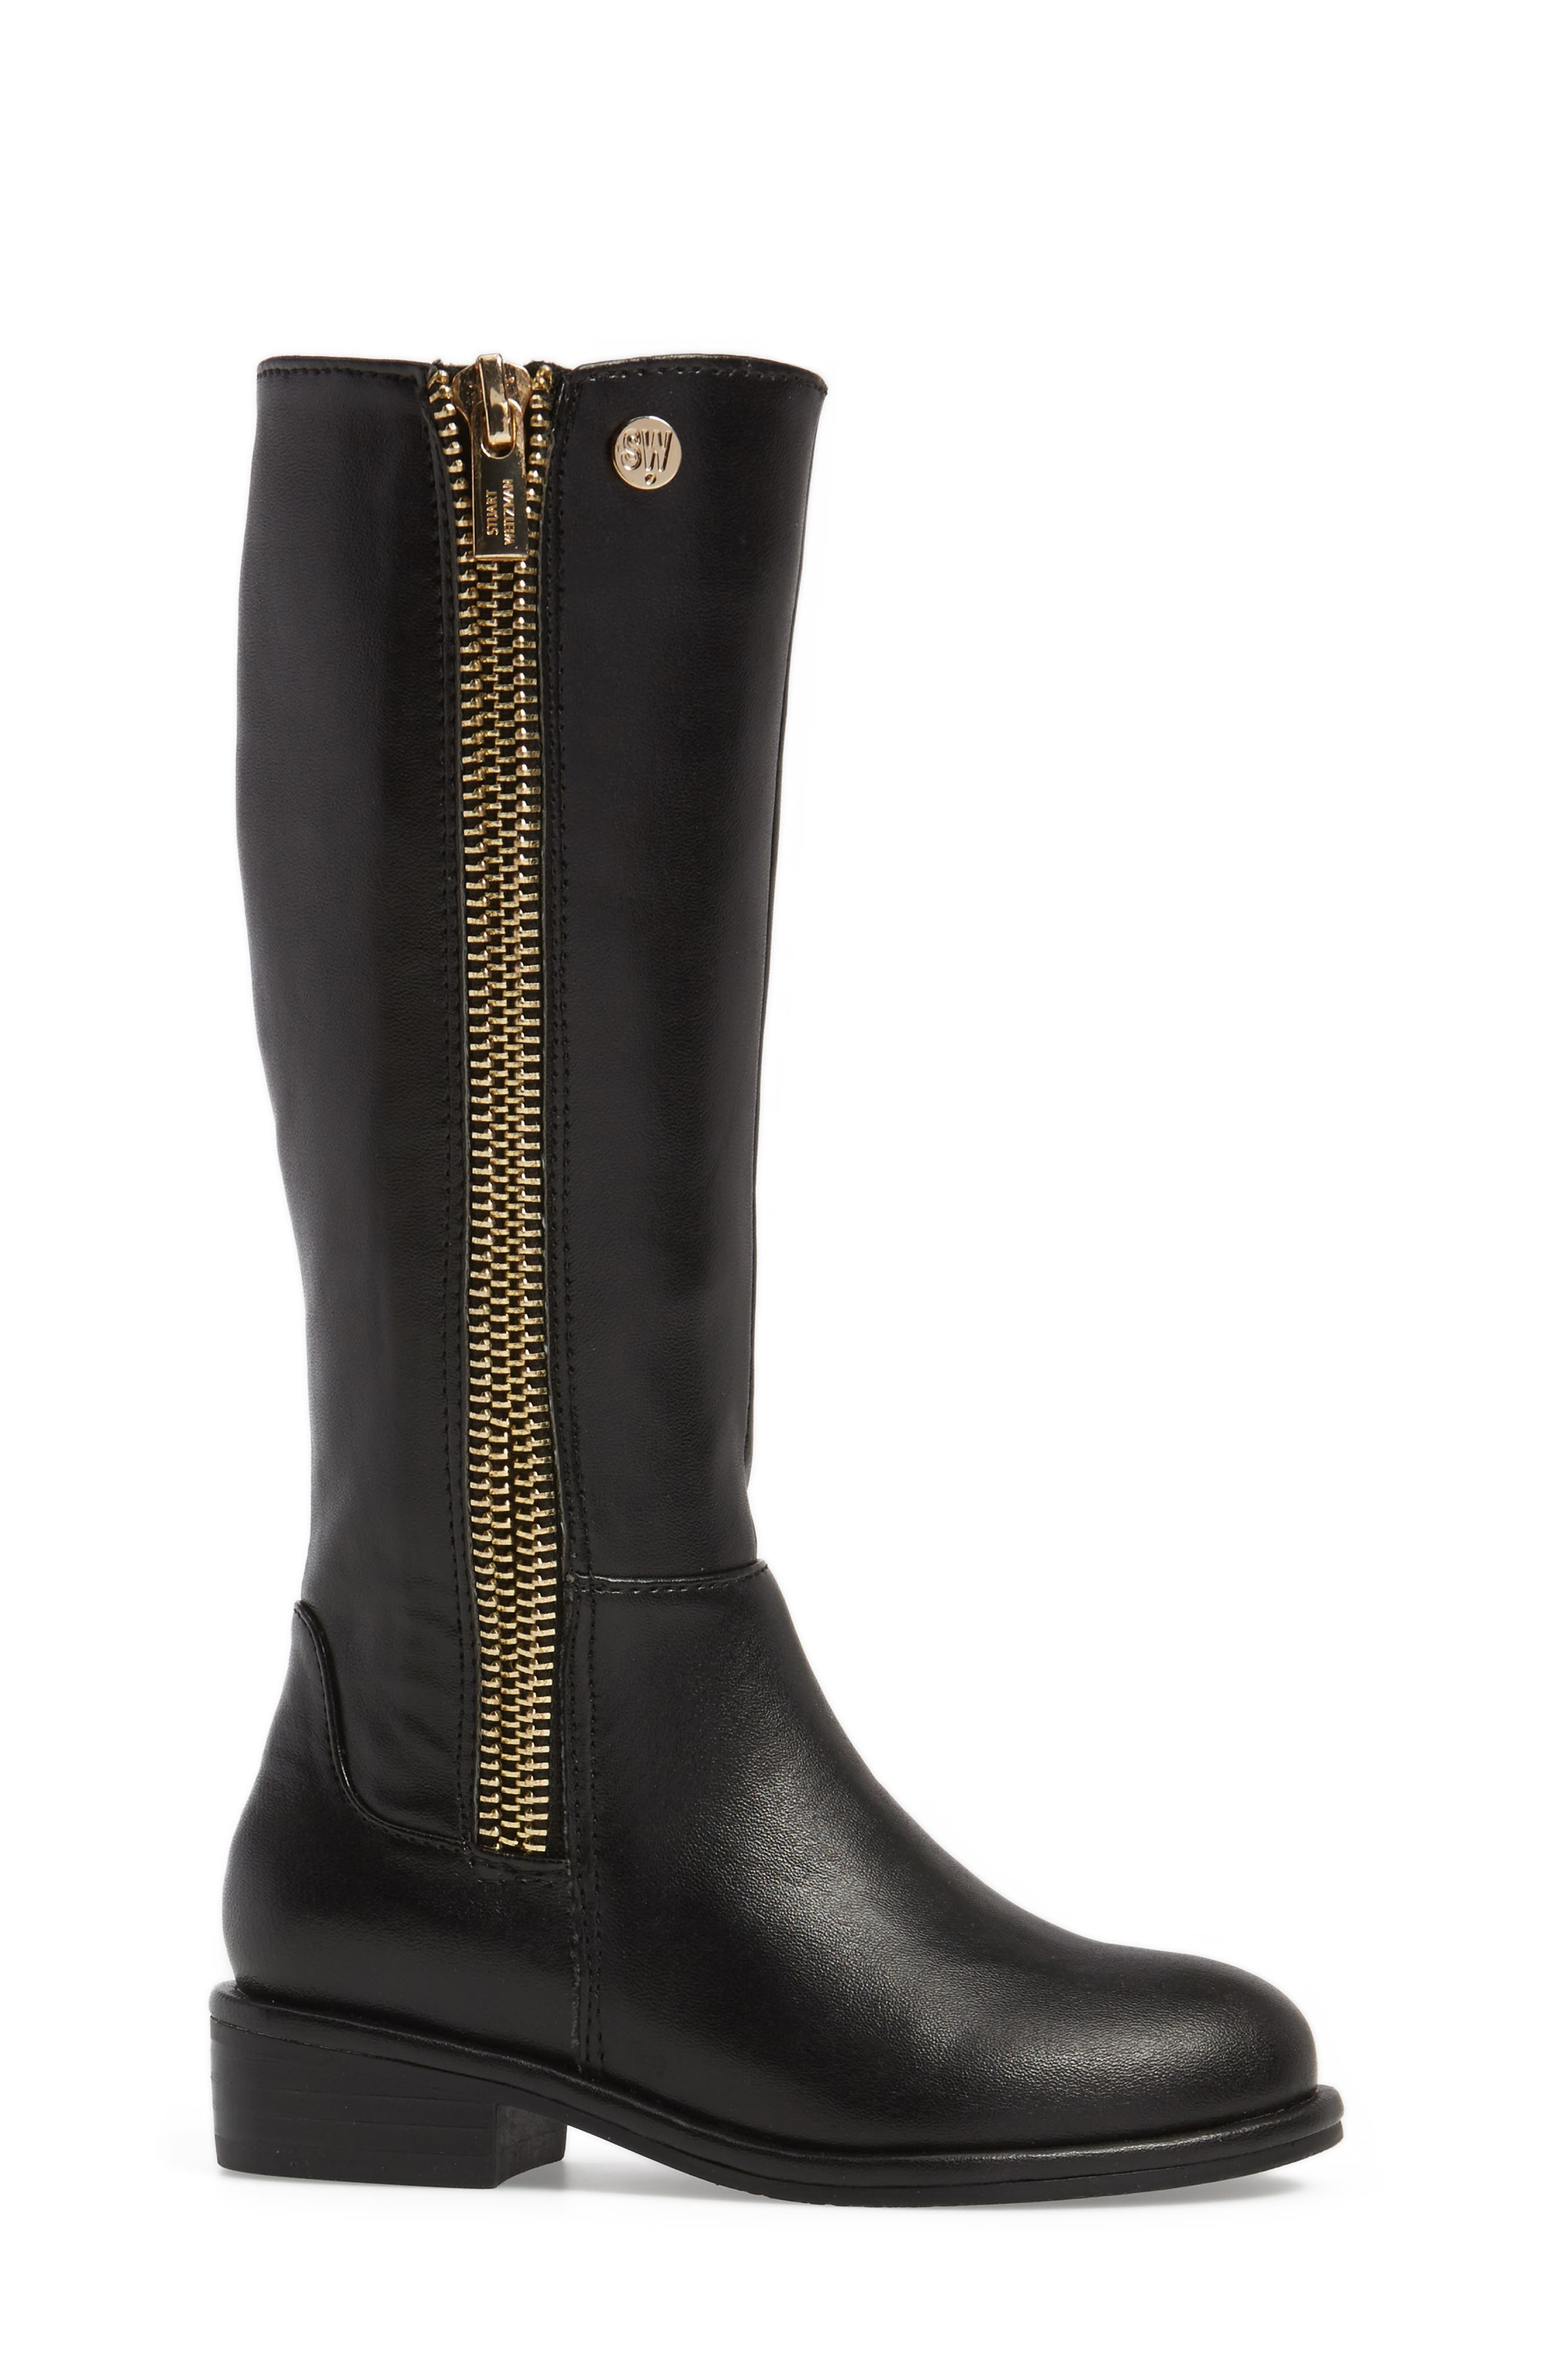 Lowland Riding Boot,                             Alternate thumbnail 3, color,                             Black Faux Leather